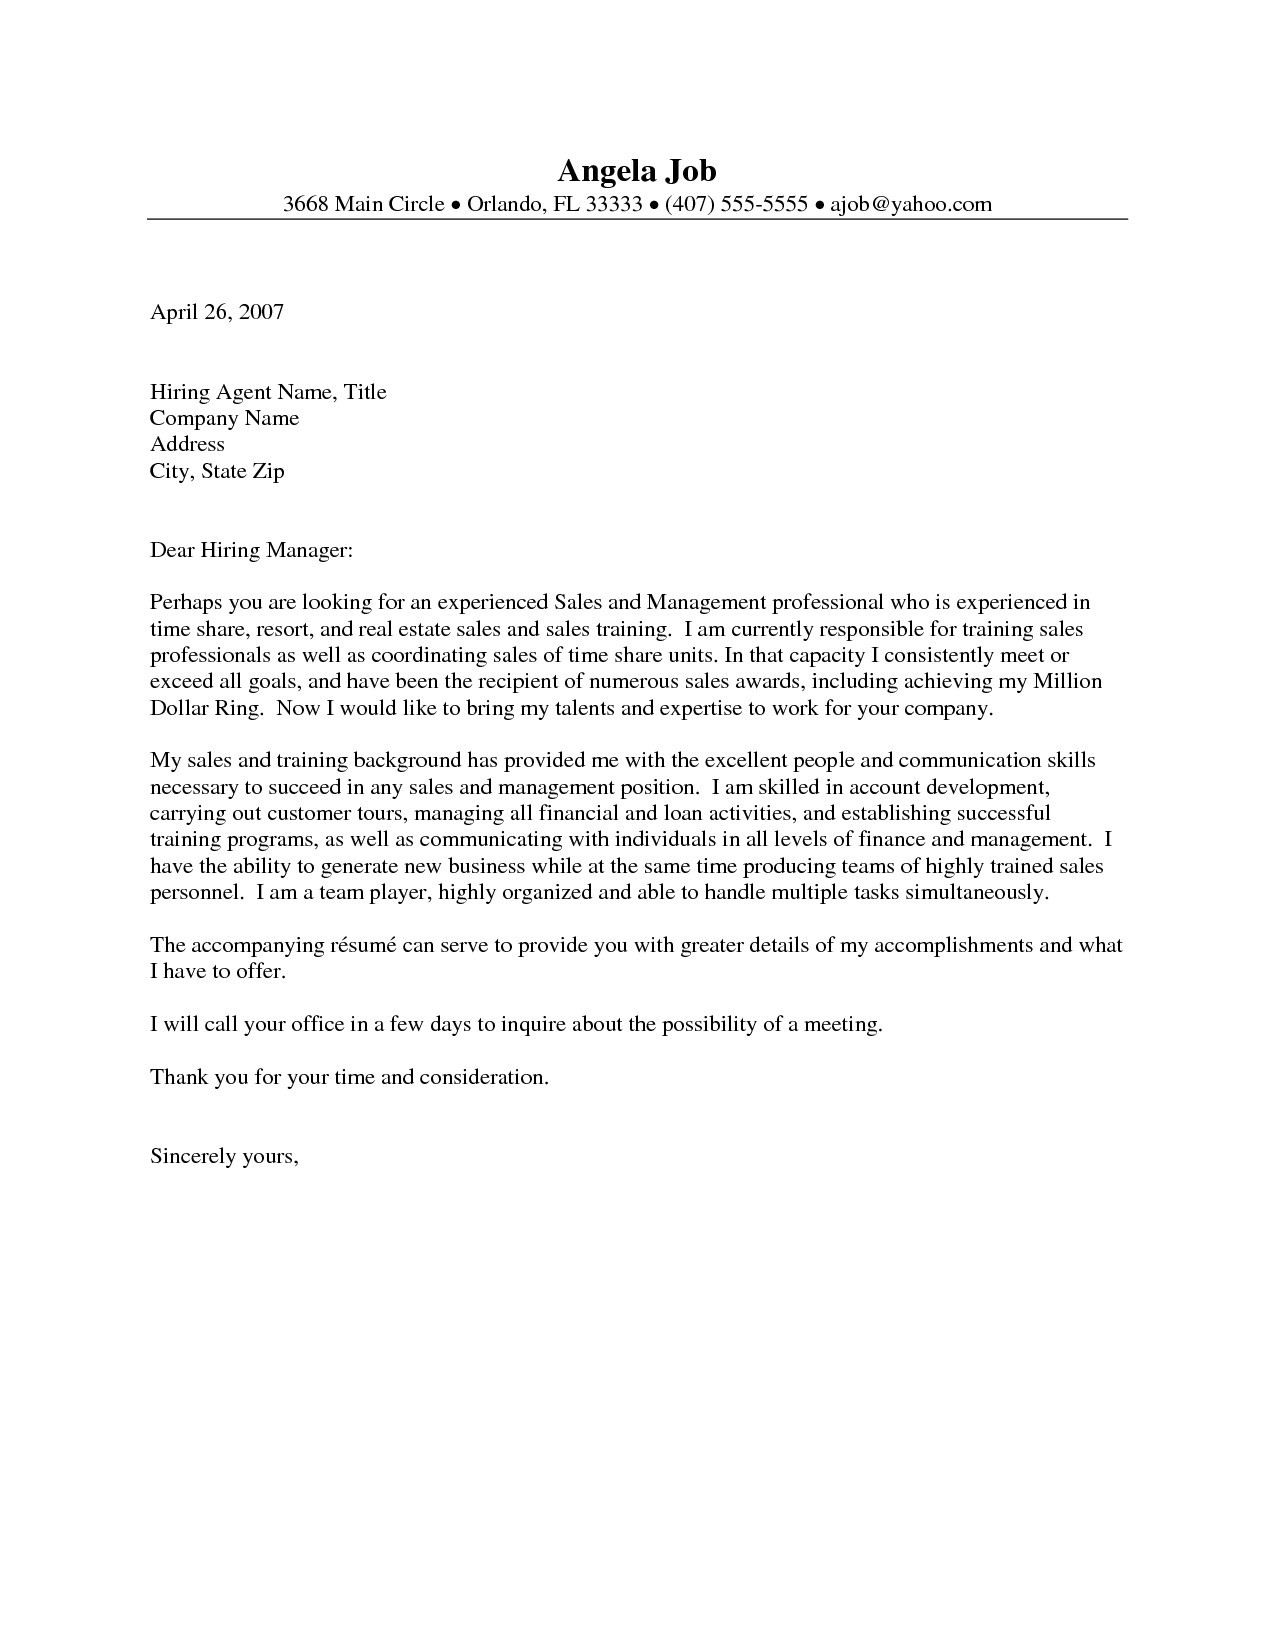 real estate introduction letter template example-Cover Letter Sample for Real Estate Job New Sample Cover Letter for Real Estate Job Valid 11-f